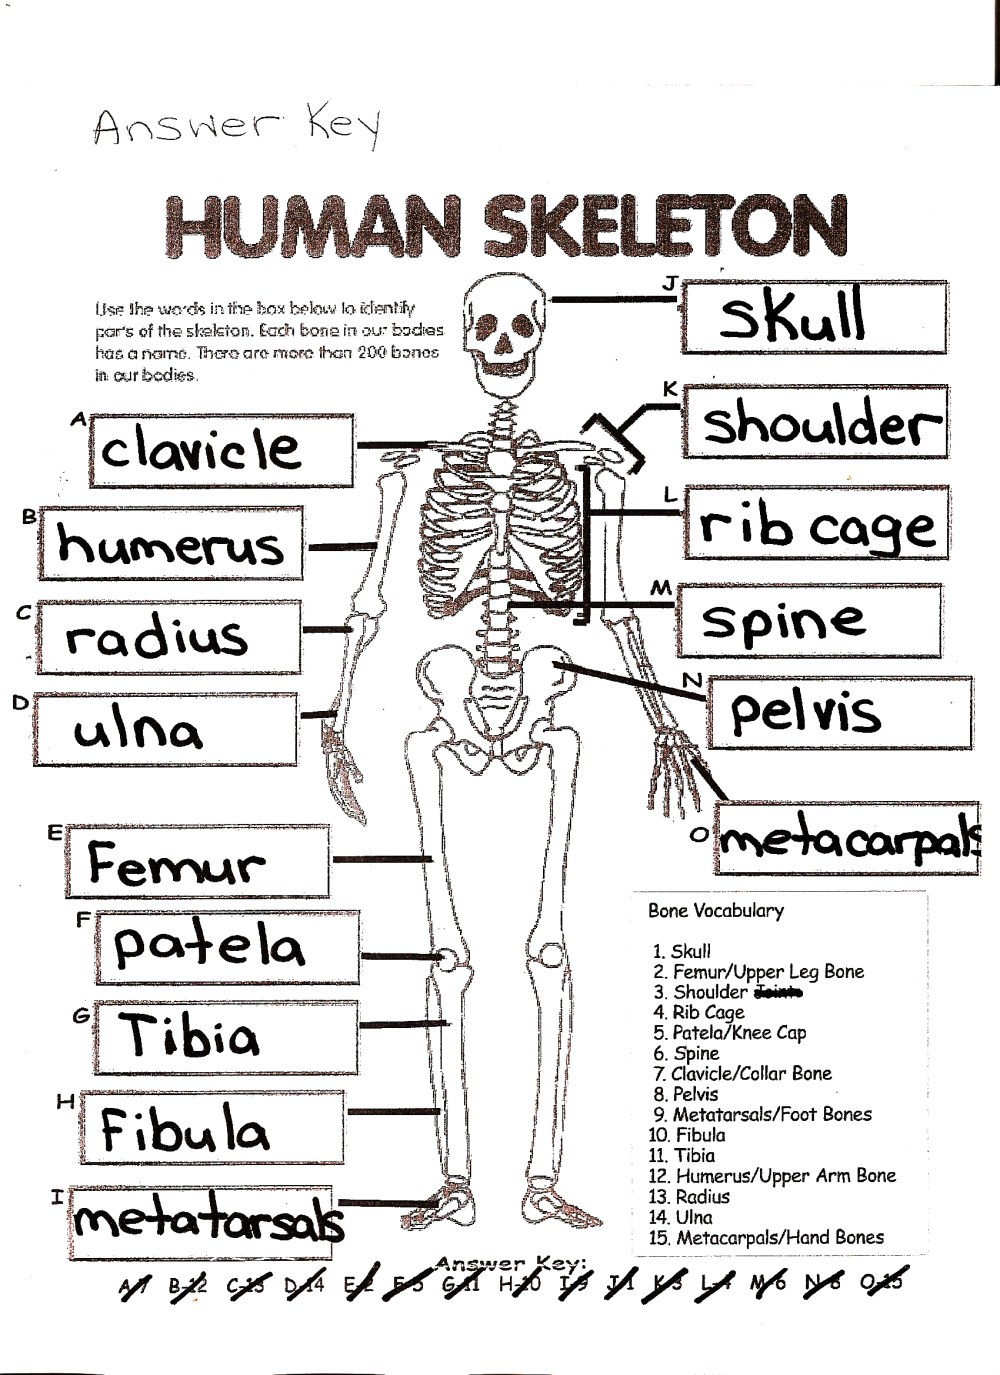 medium resolution of Human Skeleton Worksheet Answers   Printable Worksheets and Activities for  Teachers